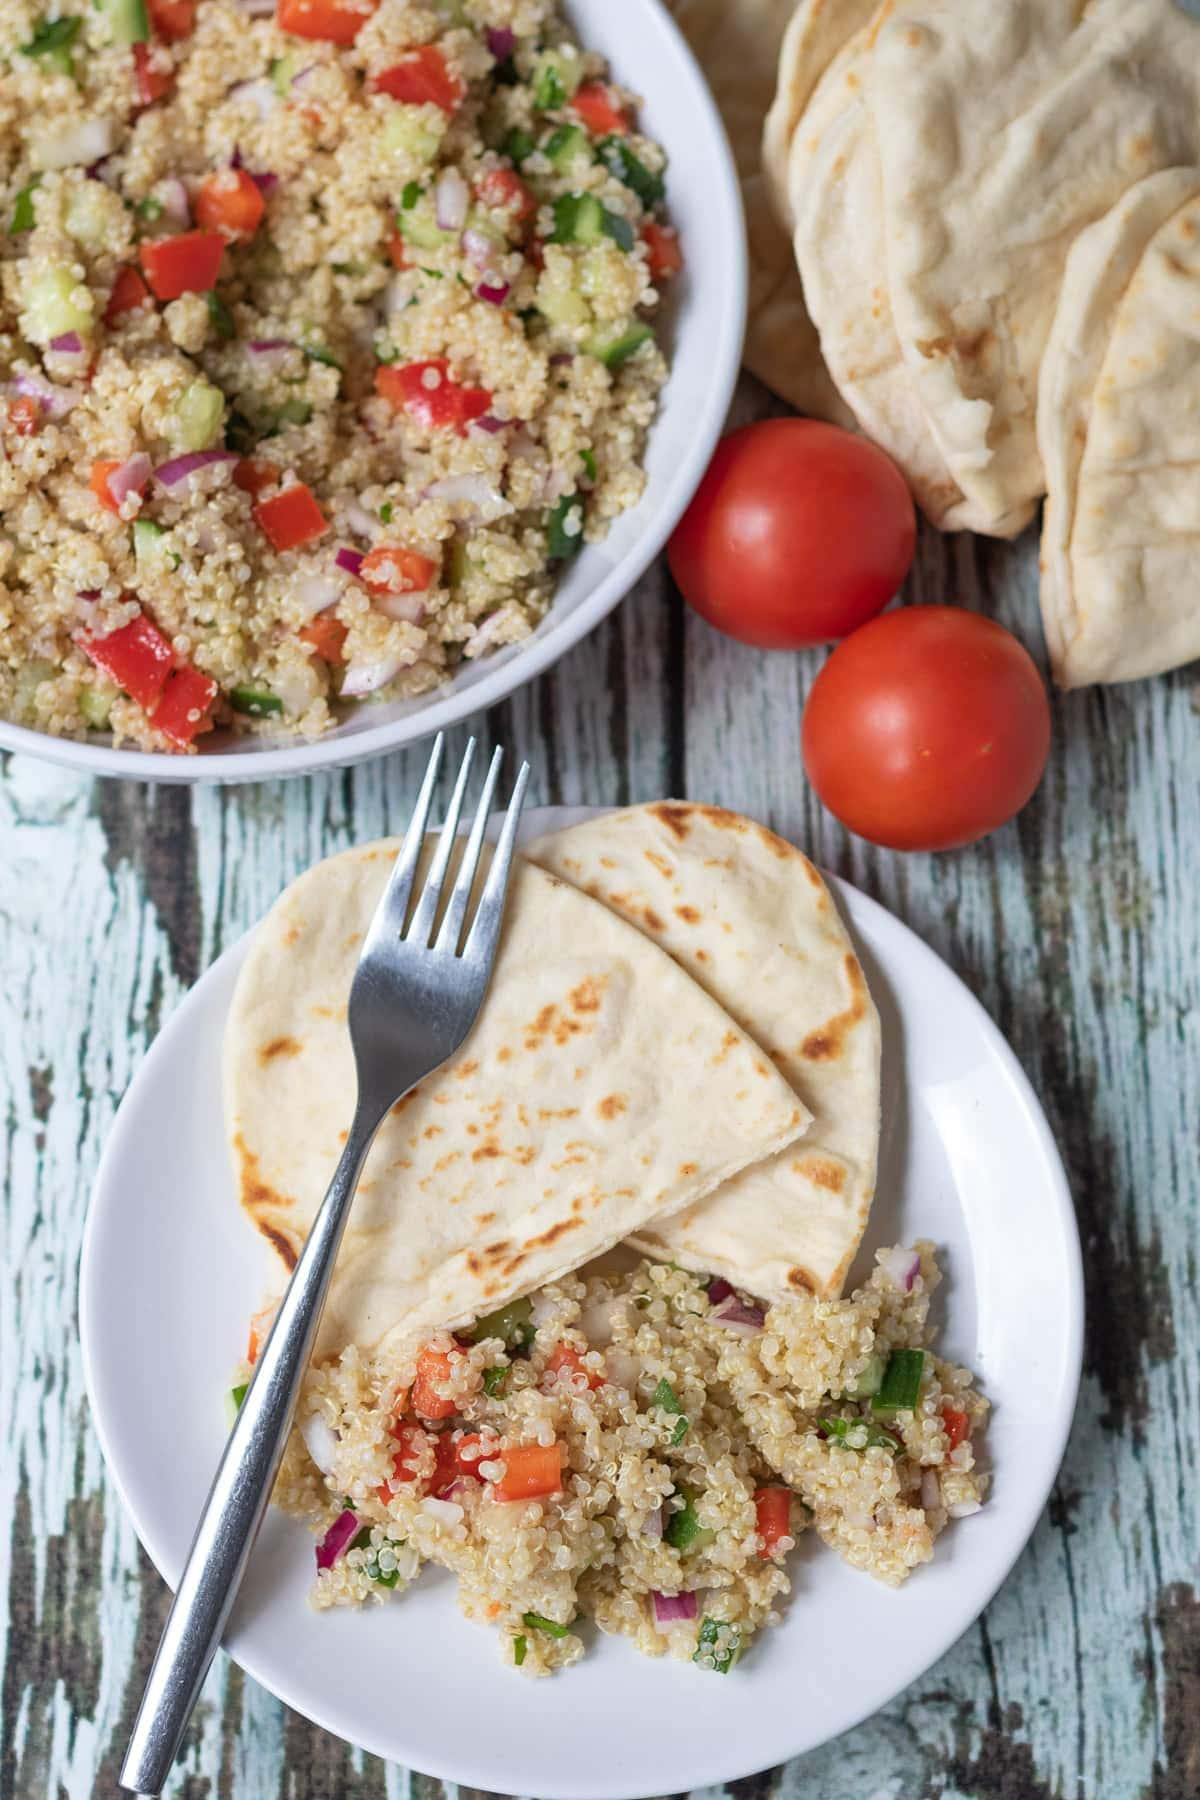 Birds eye view of a plate with a serving of quick quinoa salad on and two flatbreads with a fork on top. Rest of the quinoa salad in a bowl at the top with tow tomatoes and flatbreads beside.